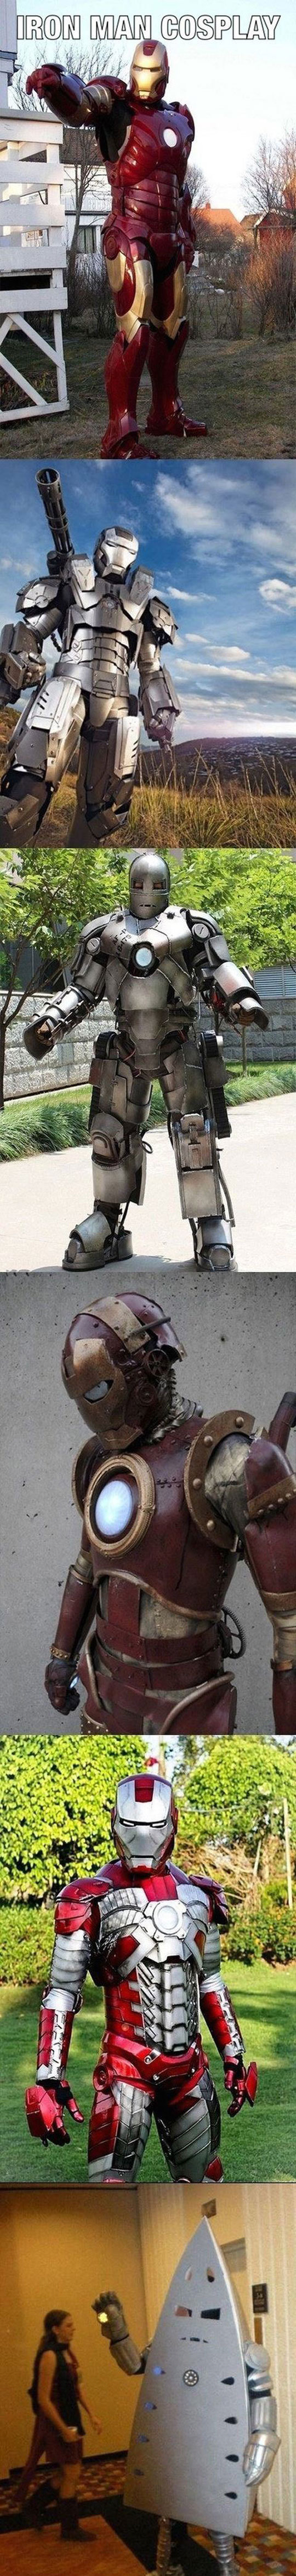 The Best Of Iron Man Cosplay. The Best Of Iron Man Cosplay .. I see that the Mk37 wasn't Tony's best design.